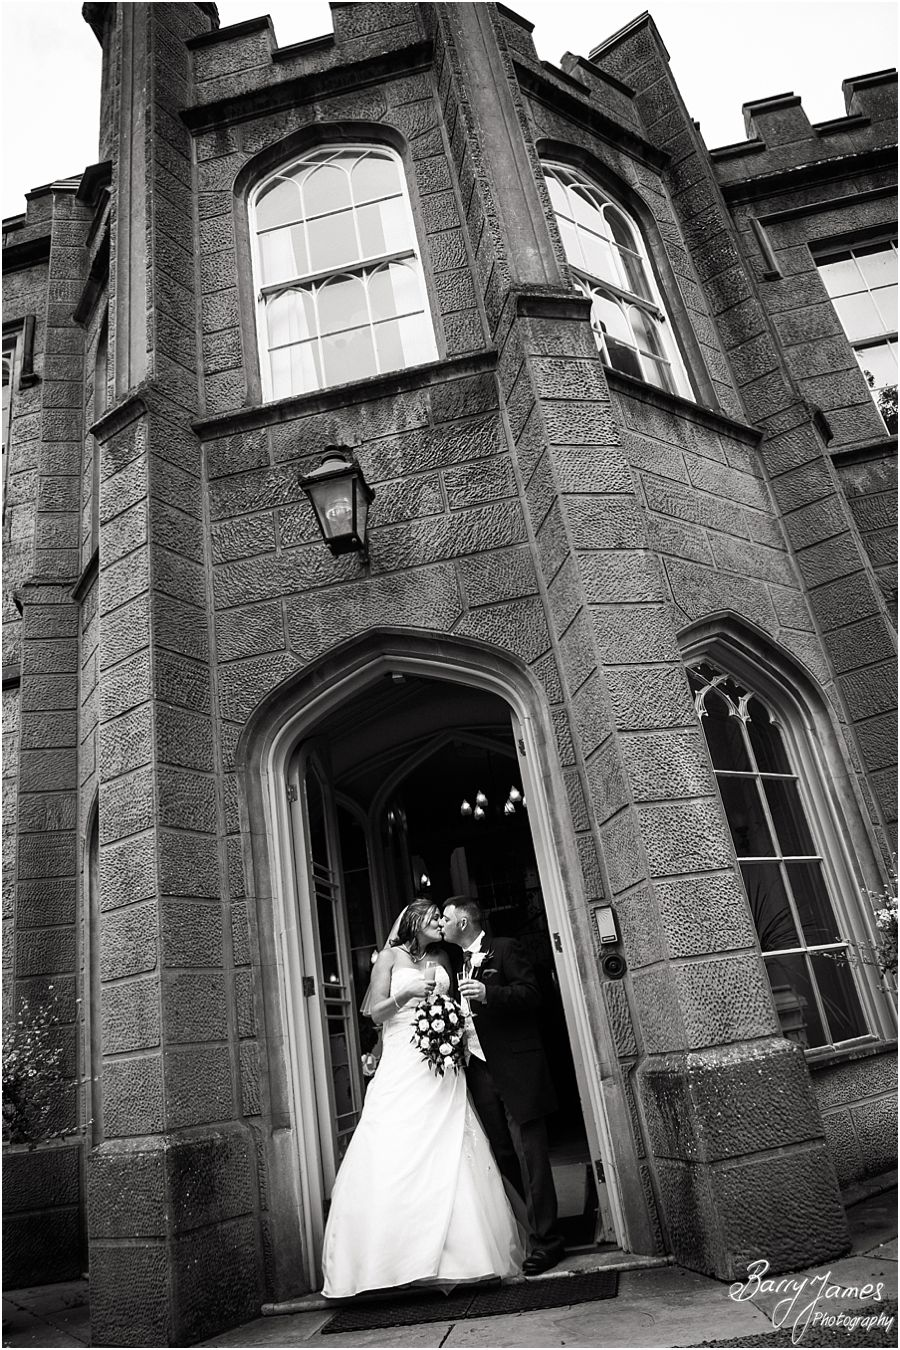 Venue recommended wedding photographer at Hawkesyard Estate in Rugeley by Award Winning Wedding Photographer Barry James